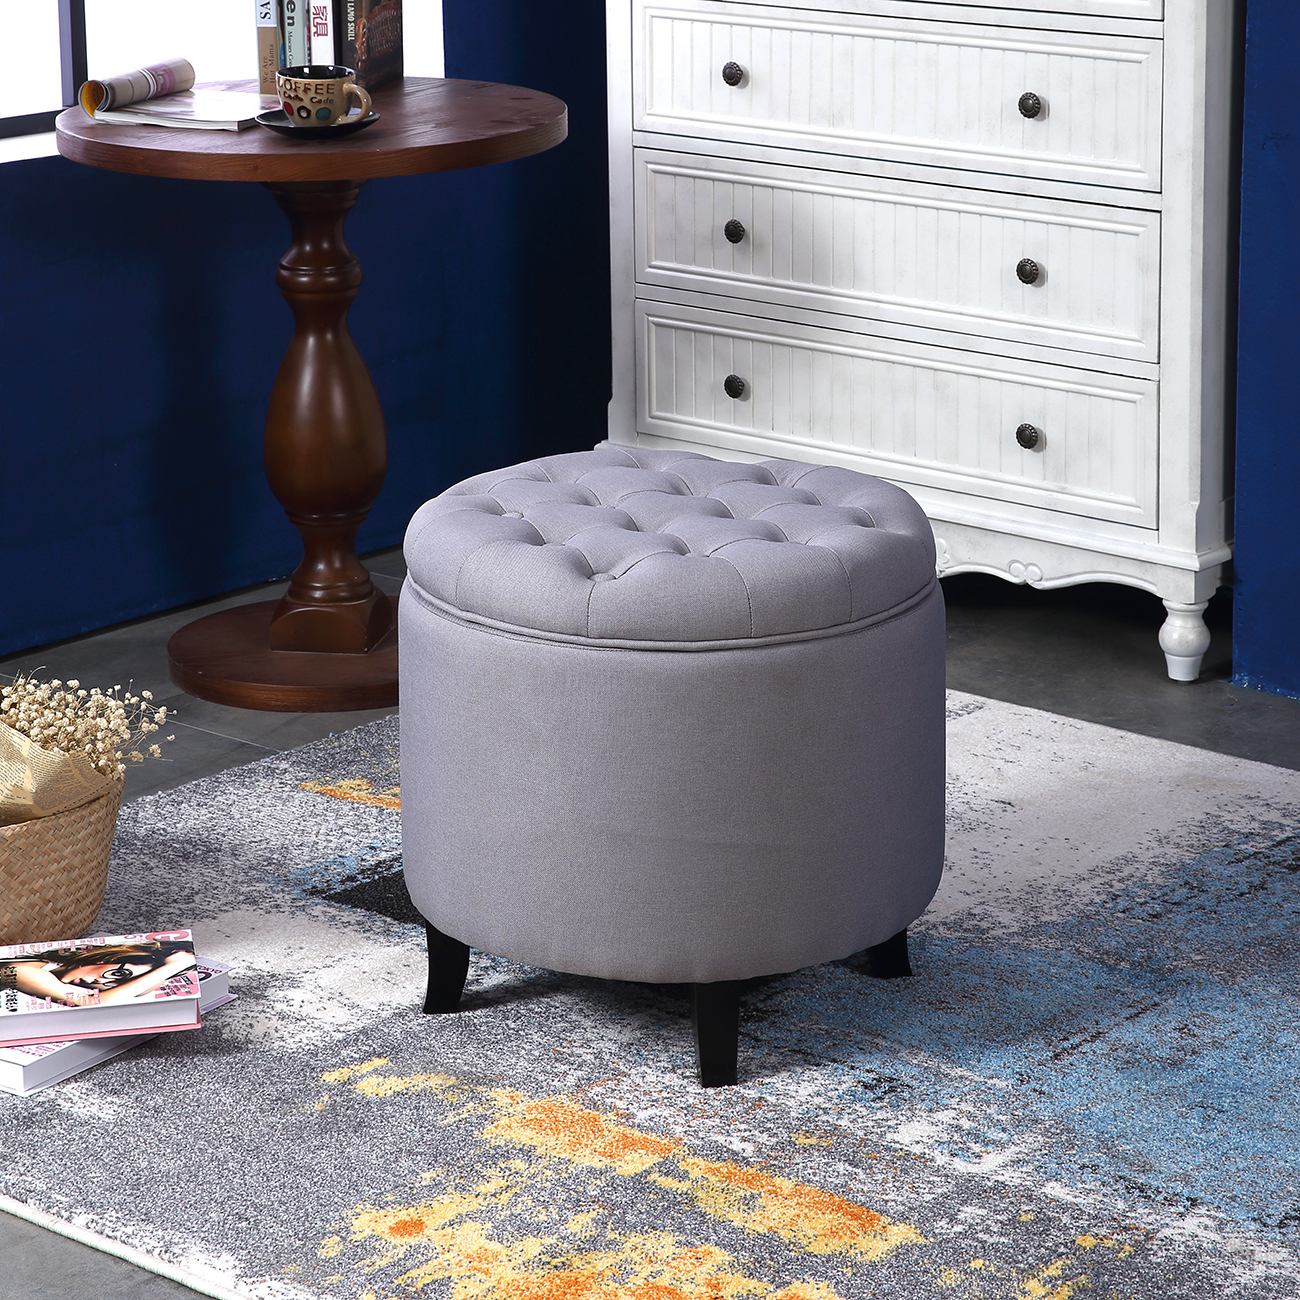 Charmant Elegant Fabric Tufted Button Ottoman Round Footstool Coffee